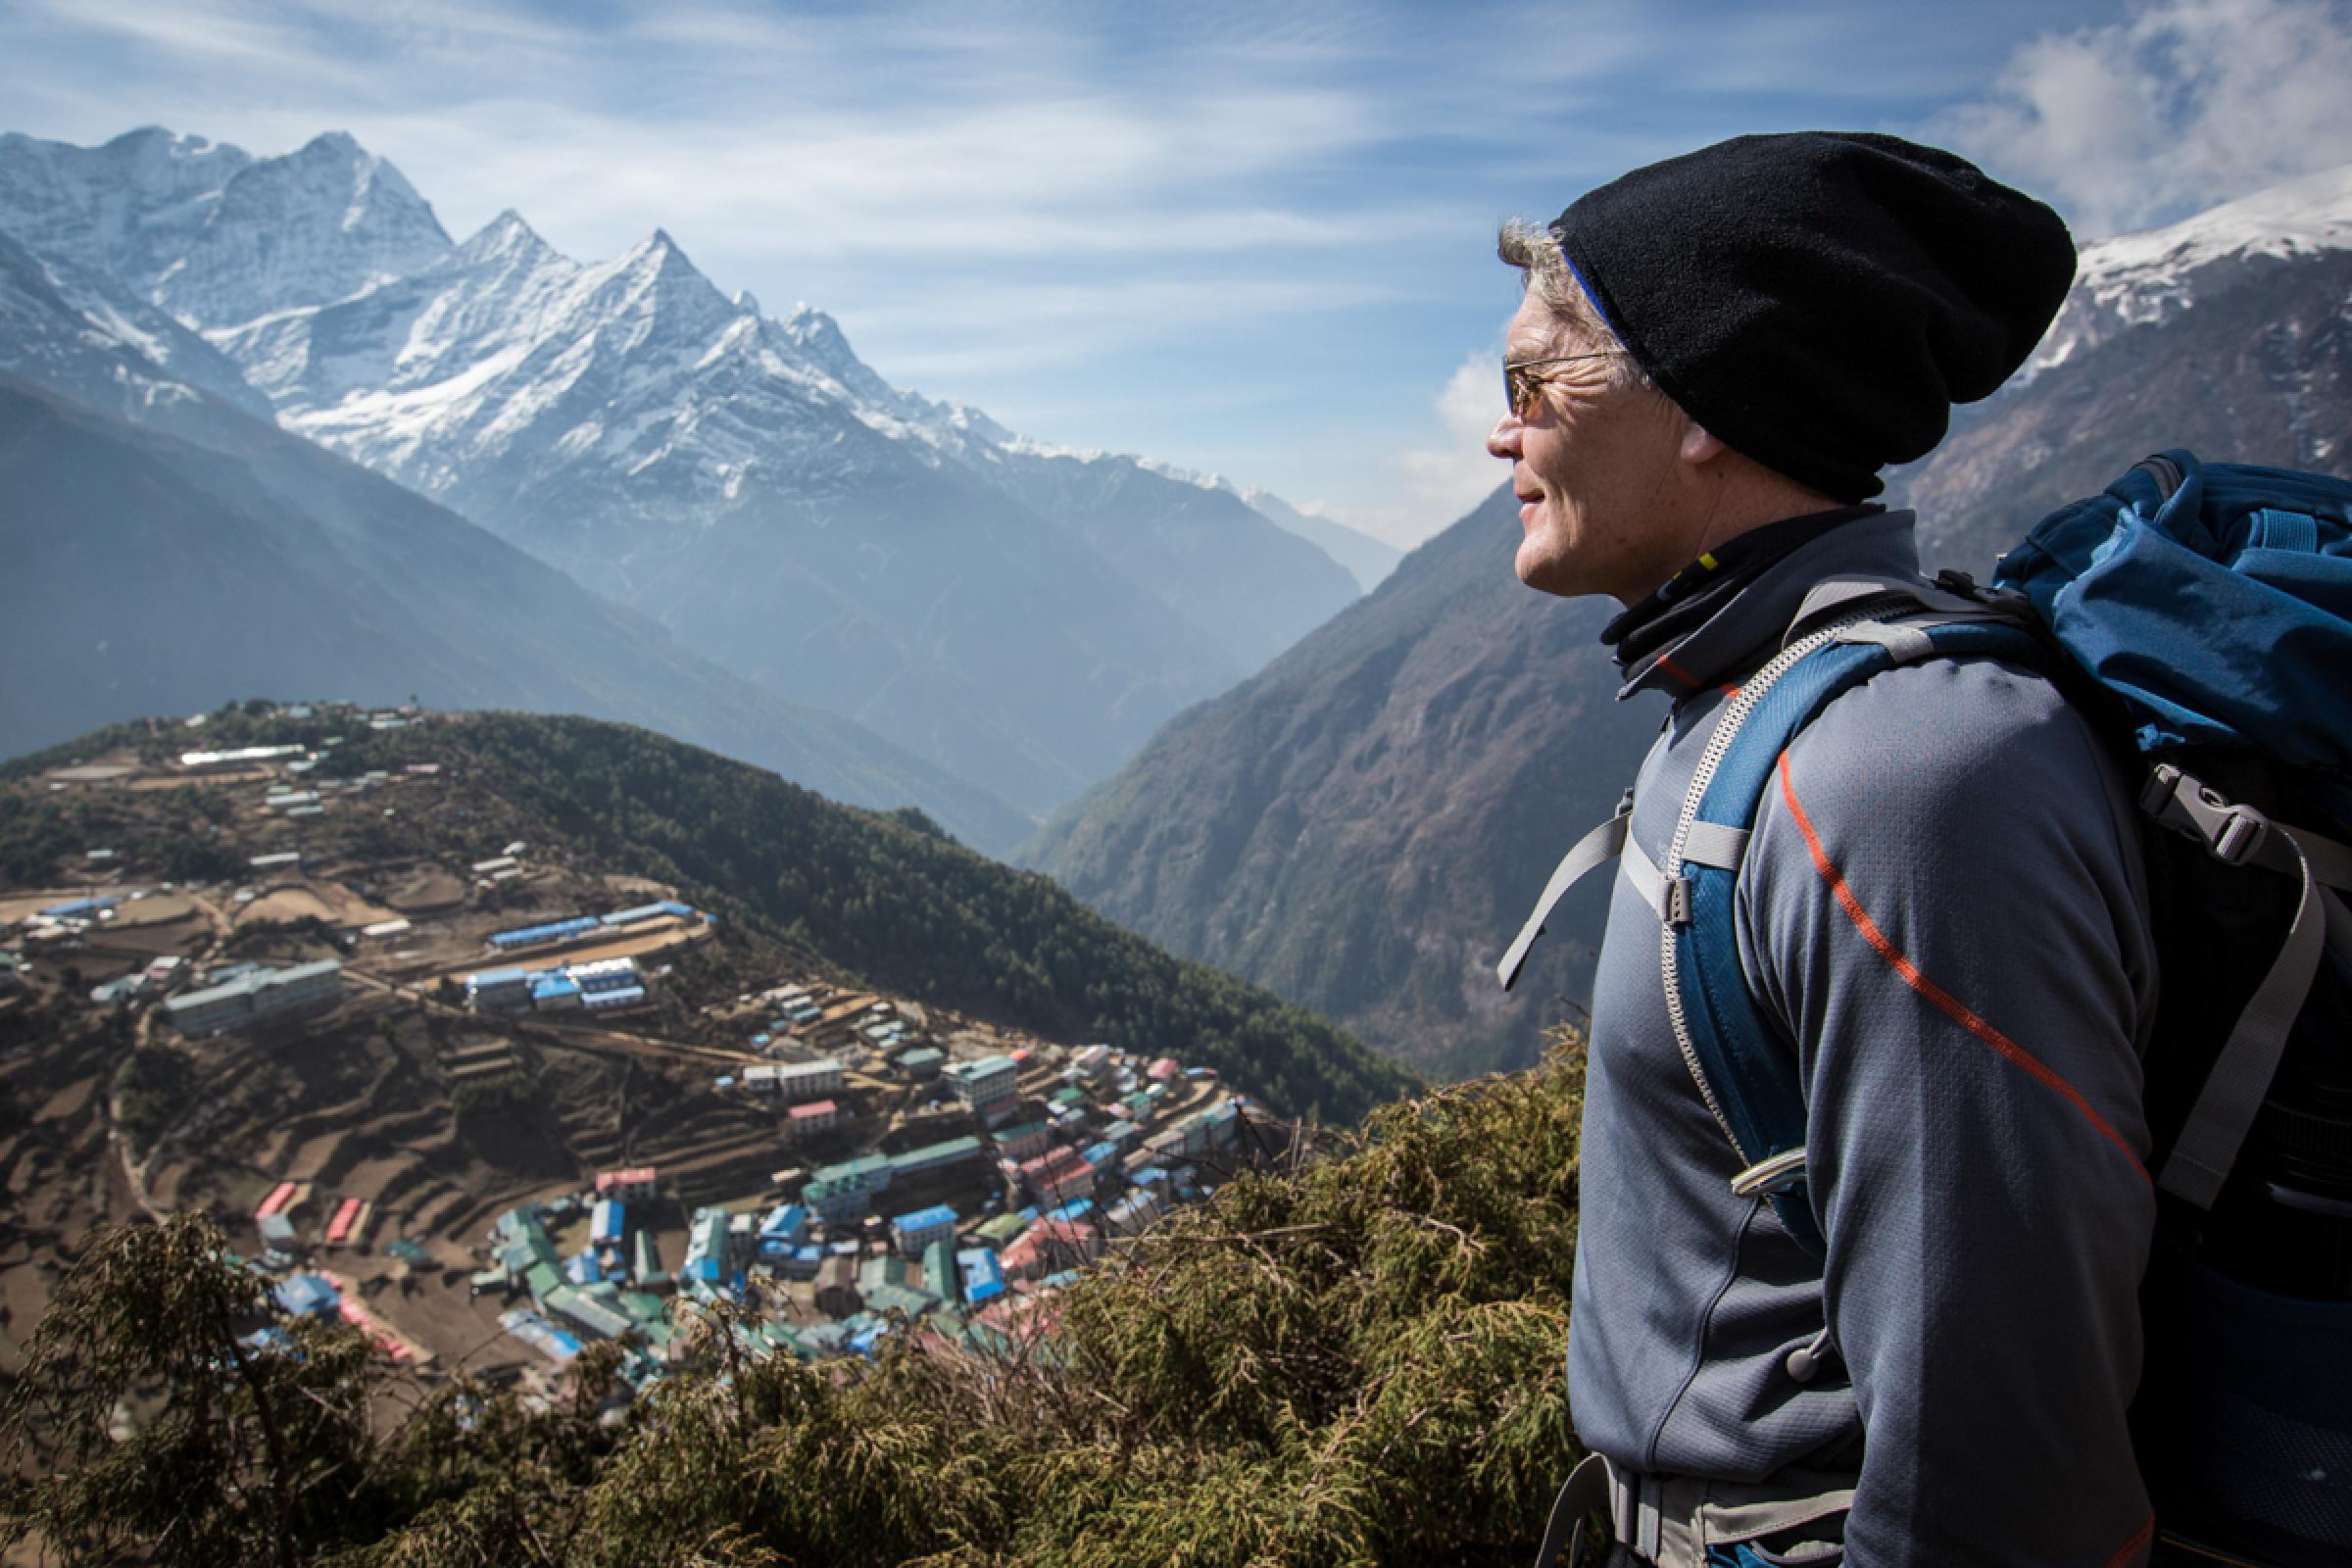 Trek to Namche Bazaar (11,290 ft/3,440 m) approx. 4 hours